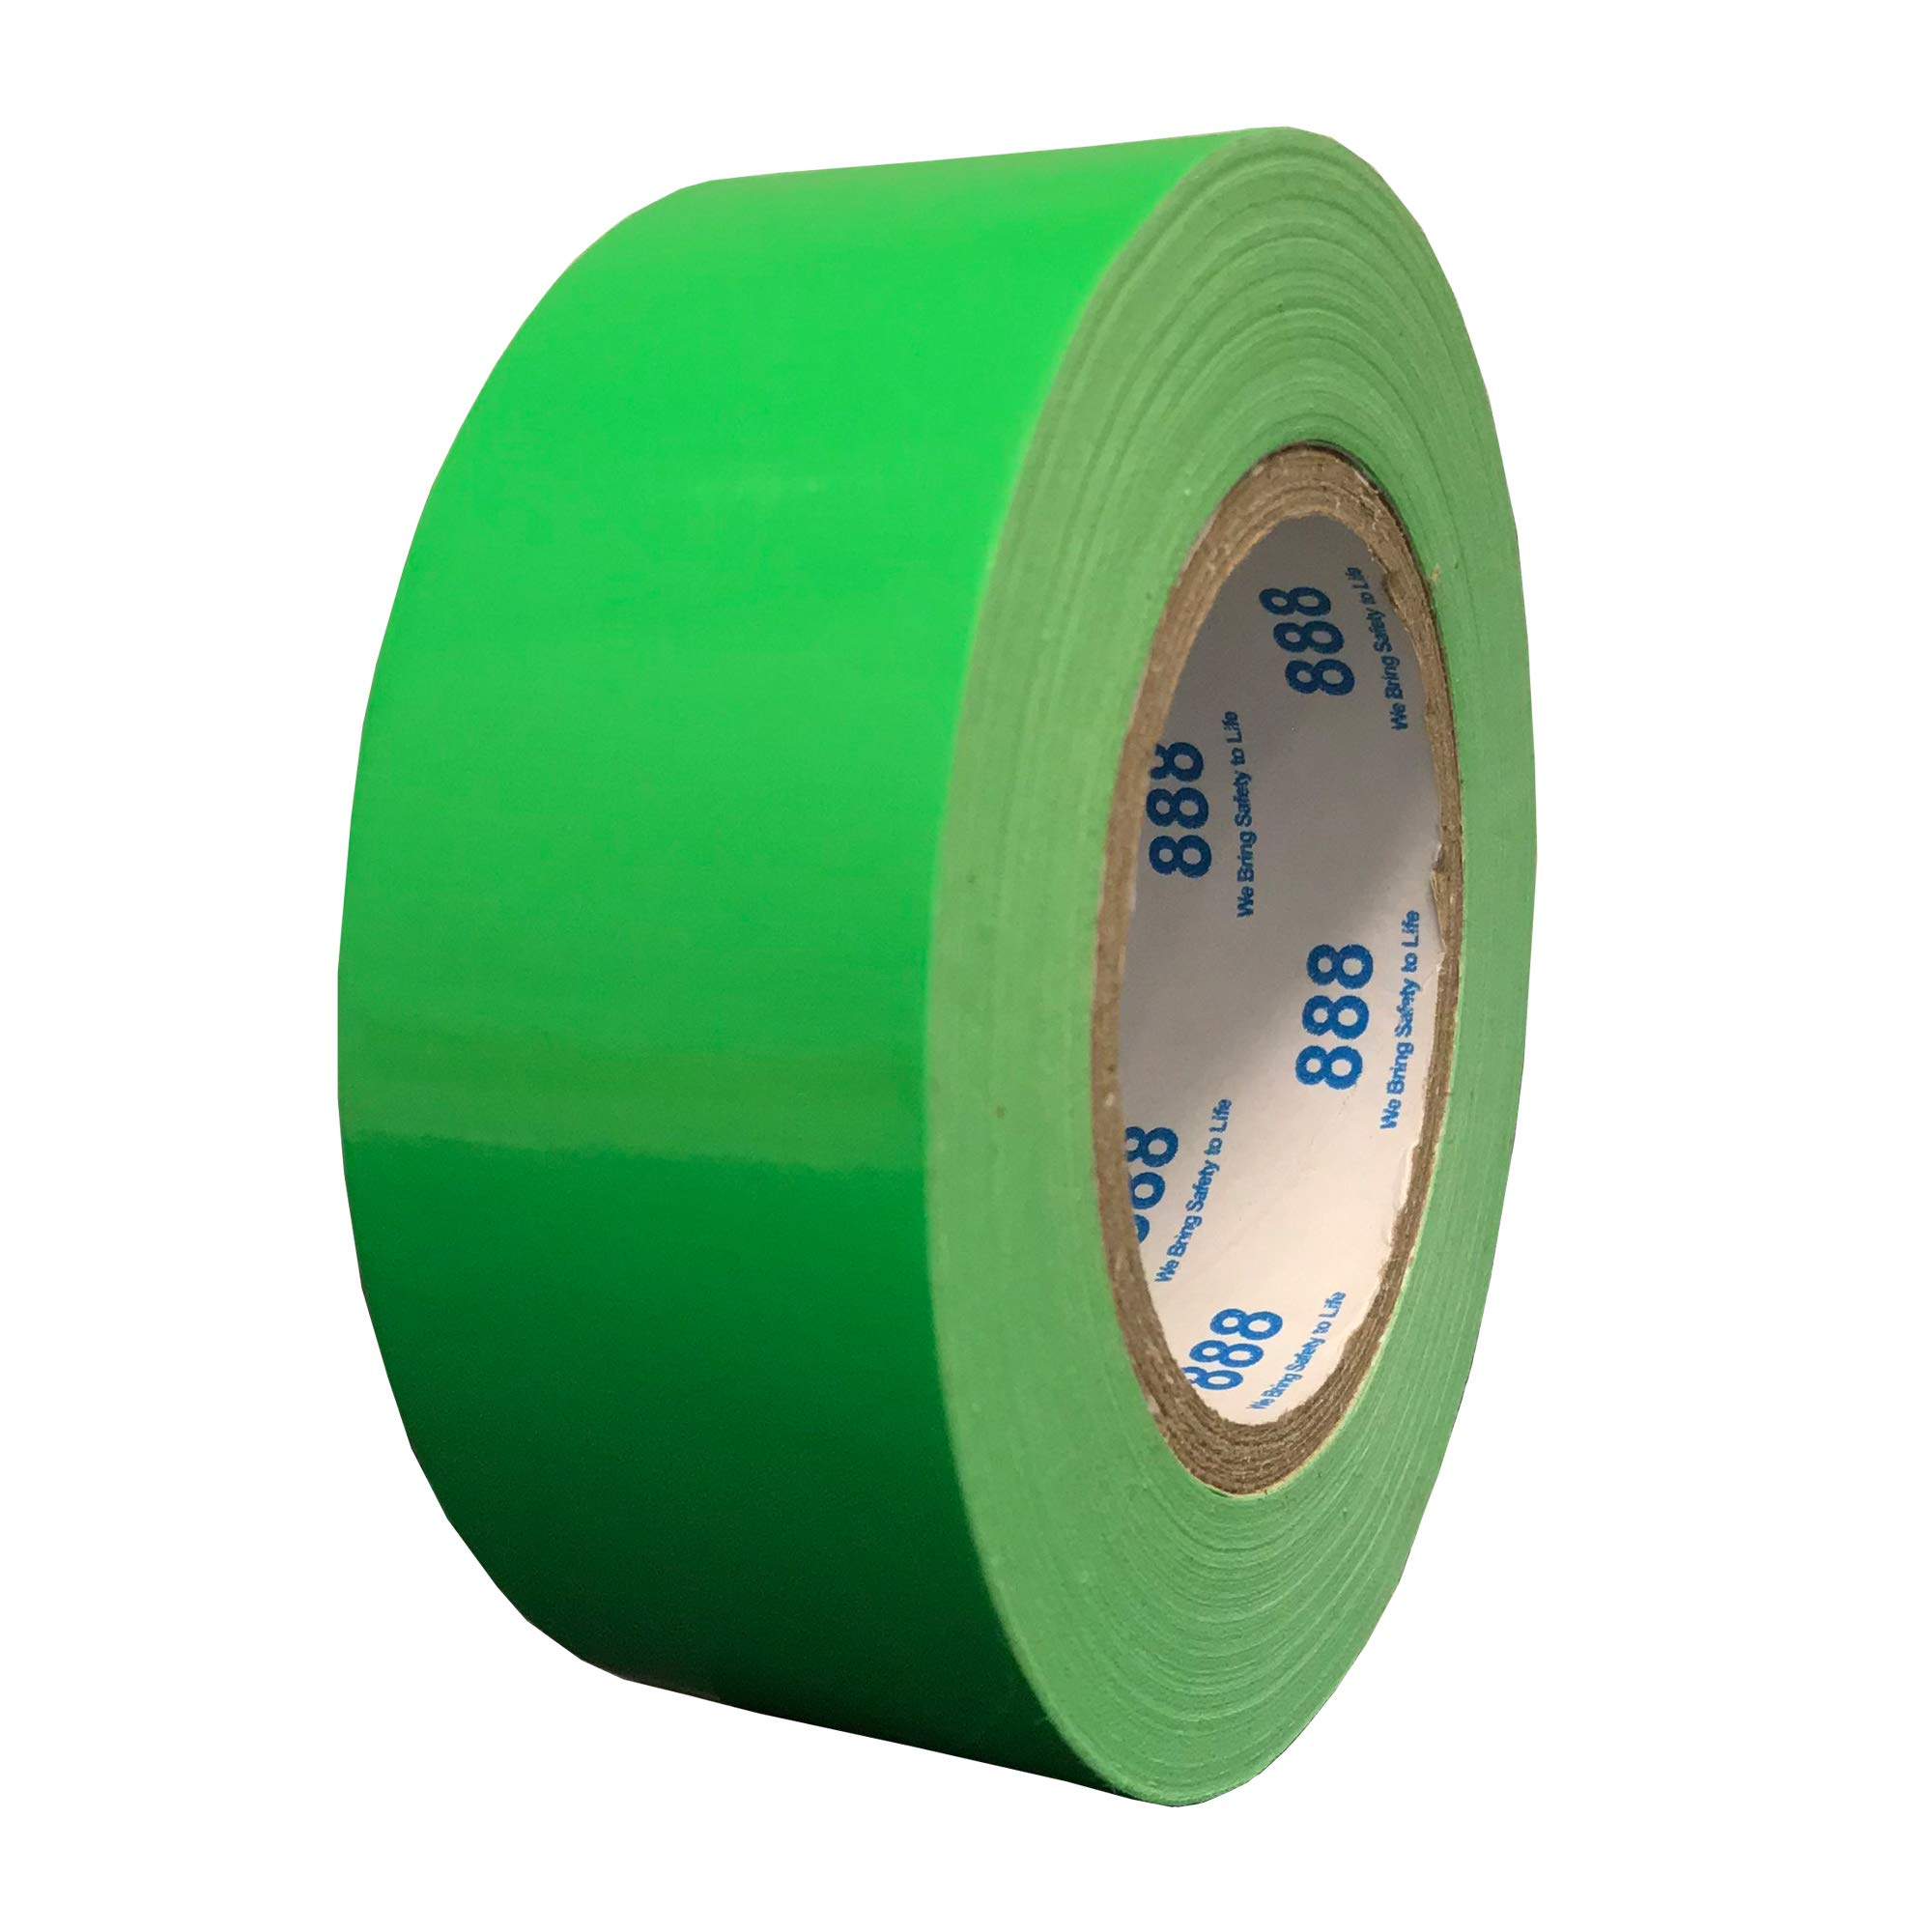 MG888 Hi-Vis Fluorescent Green Duct Tape 1.88 Inches x 60 Yards, High Visibility, Duct Tape for Crafts, DIY, Repairs, Indoor Outdoor Use, Book Repair, Must Have Garage Tool